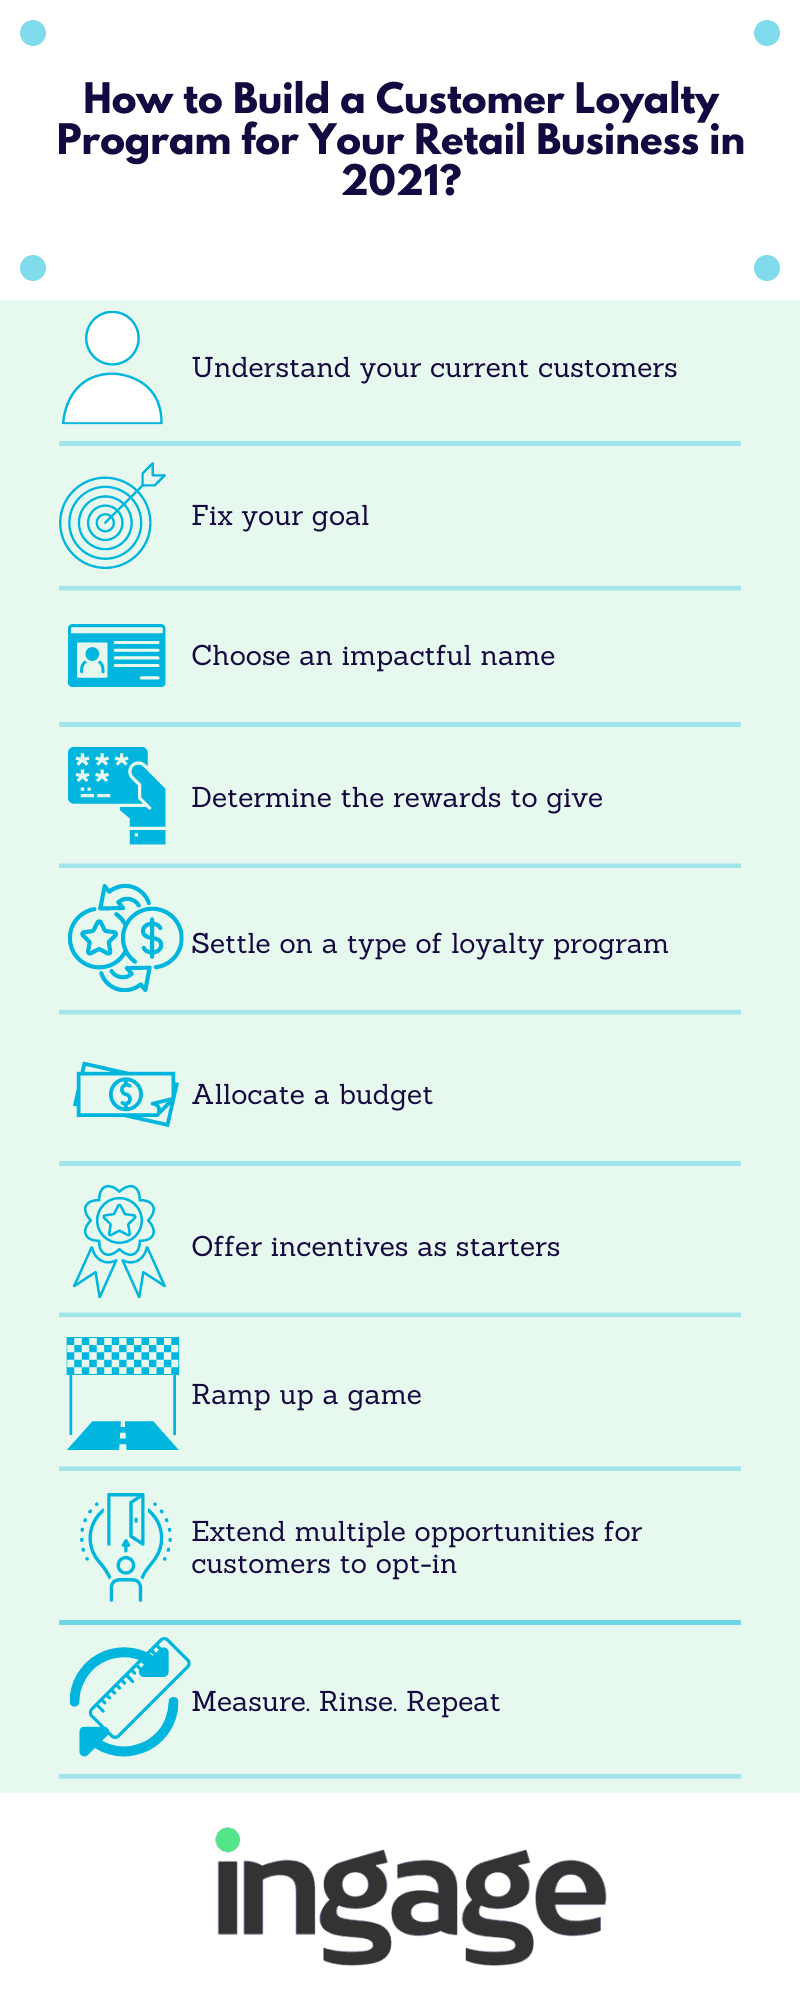 How to build a customer loyalty program for your retail business in 2021?